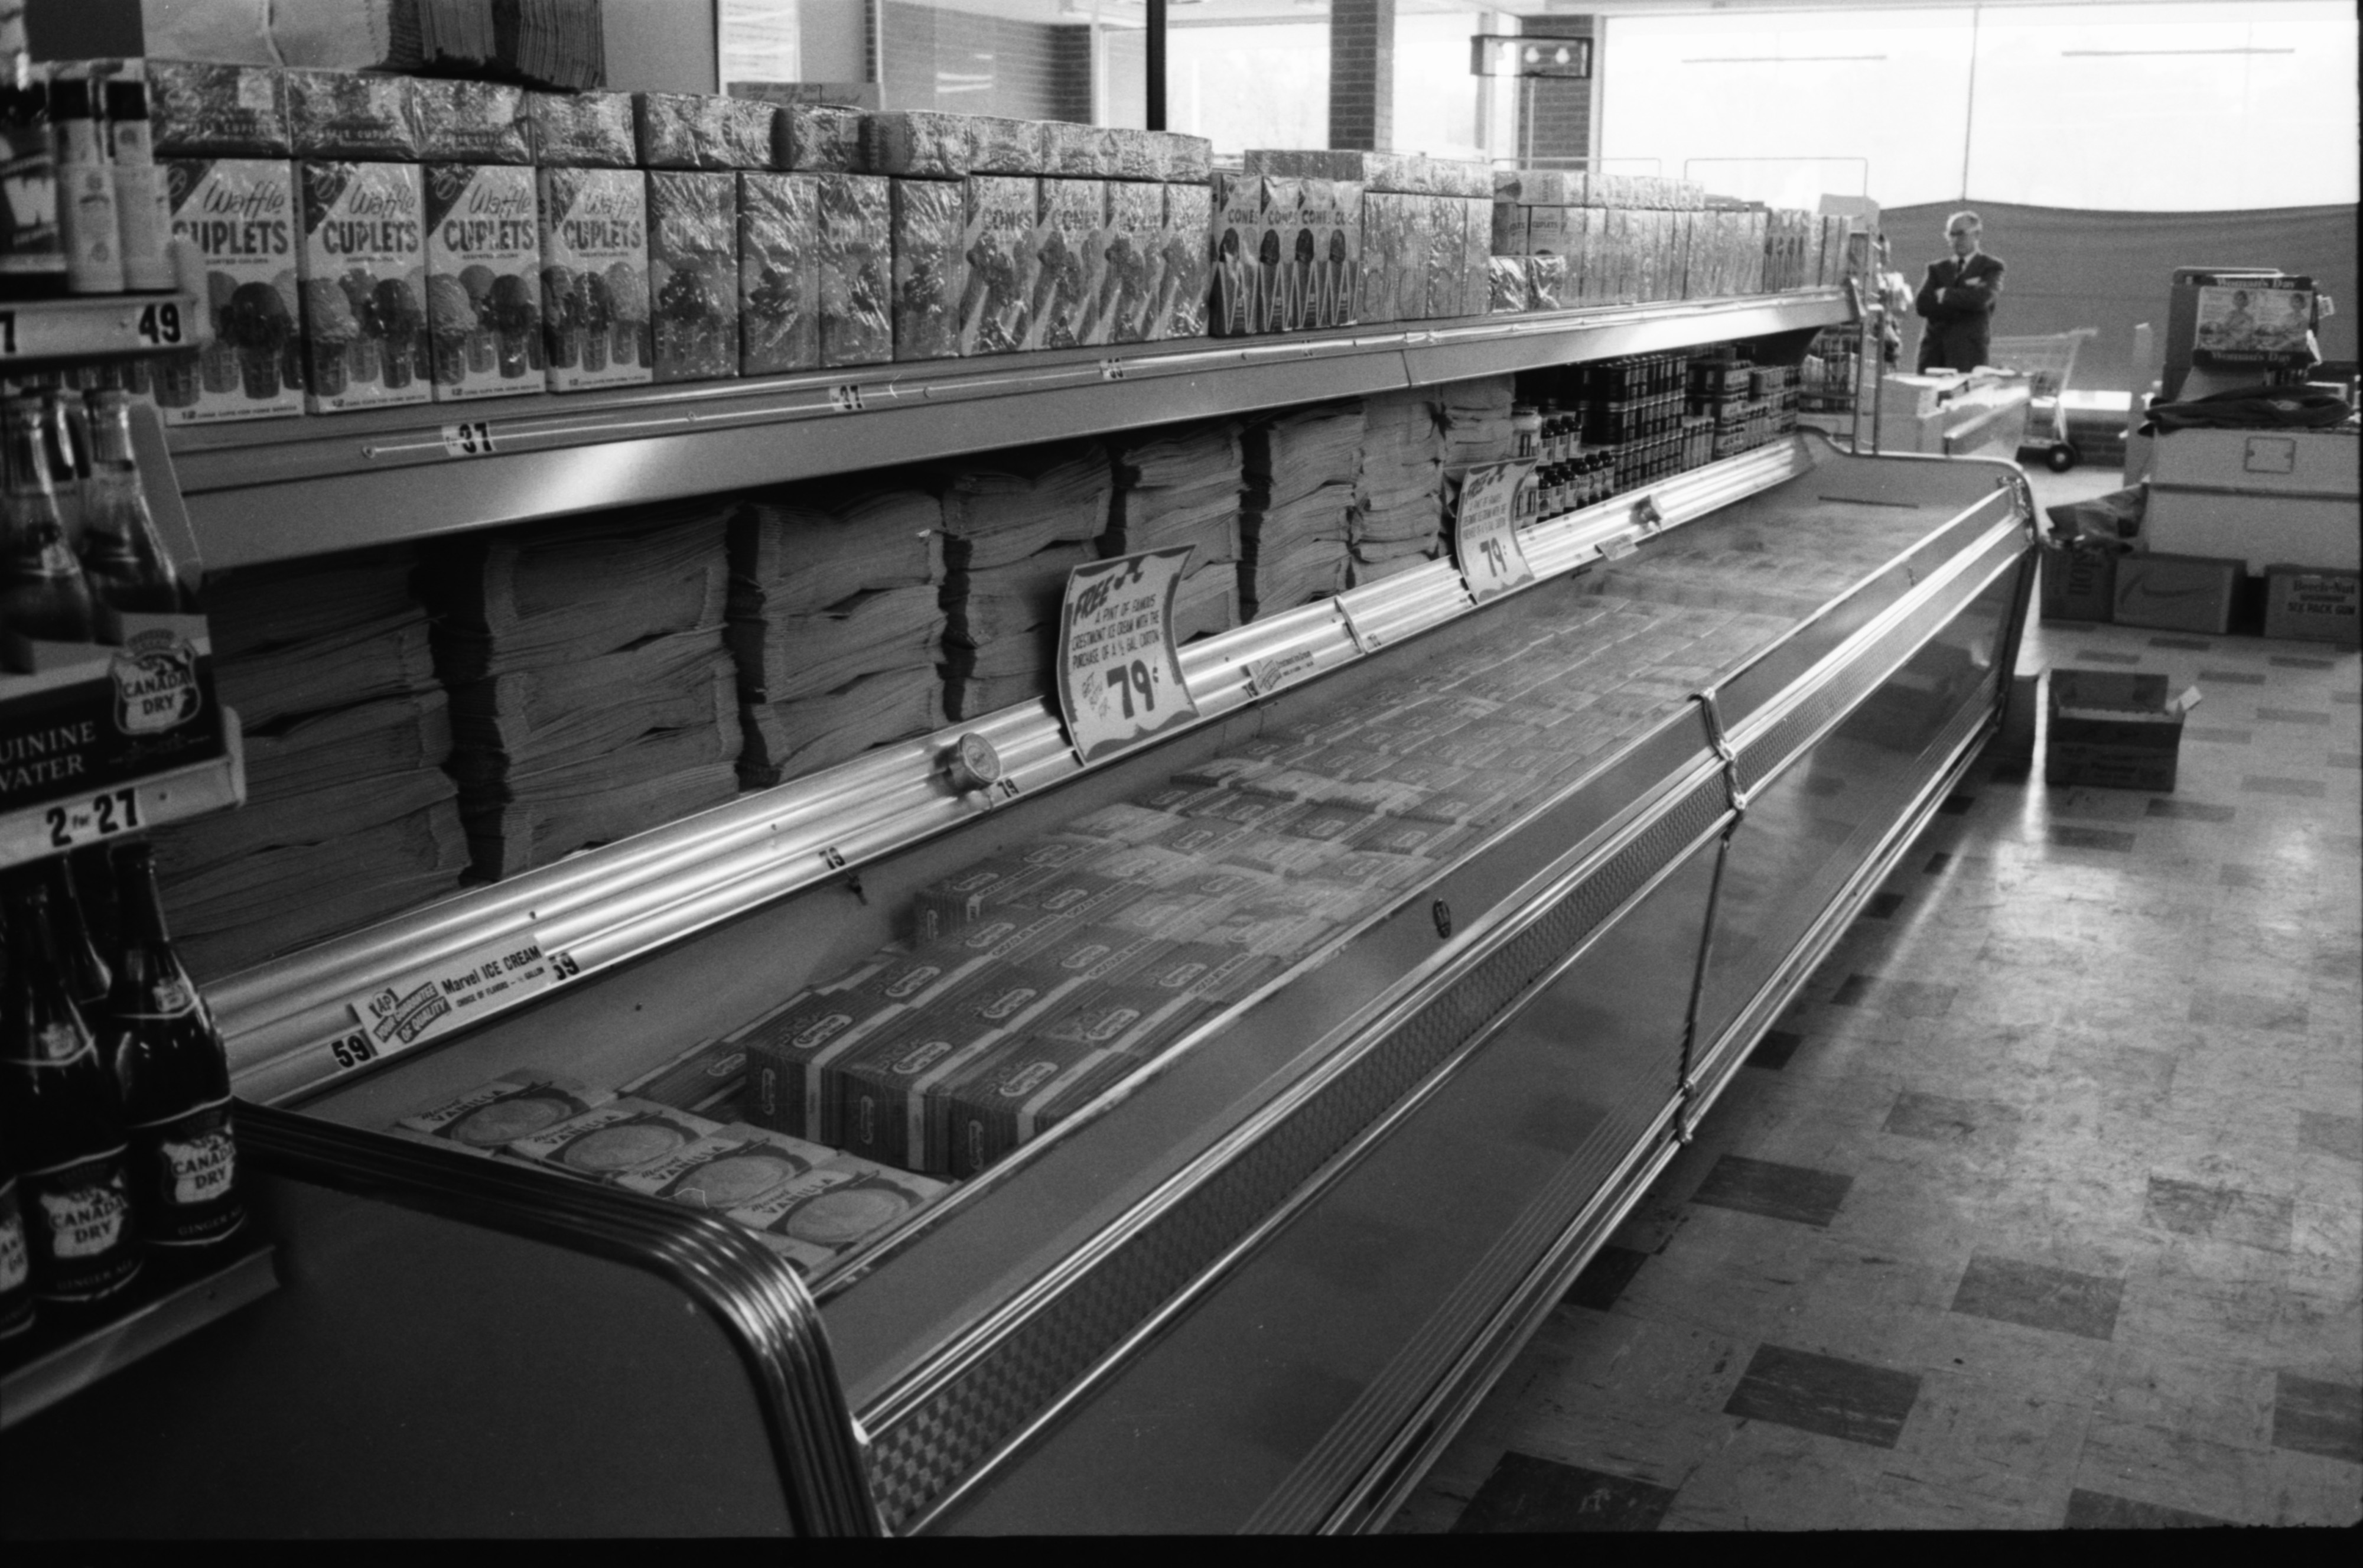 Refrigerated Cases In The New A & P Supermarket, May 1959 image